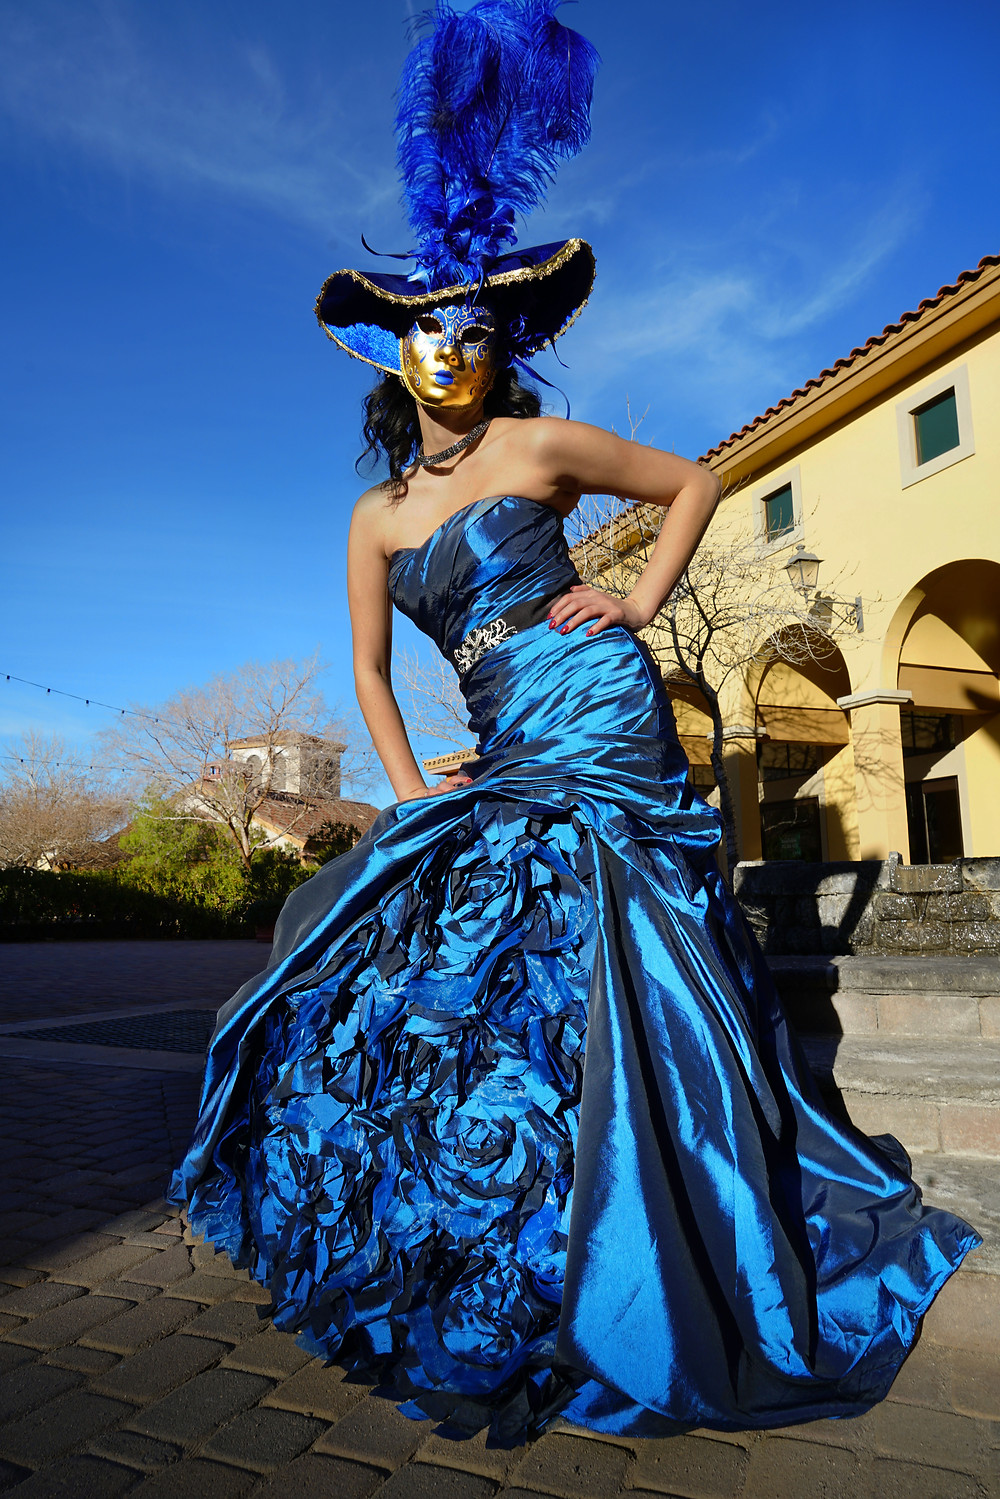 This royal blue crushed crepe fabric gown is fit for a queen.  It is adorned with blue roses and is definately a show stopping piece